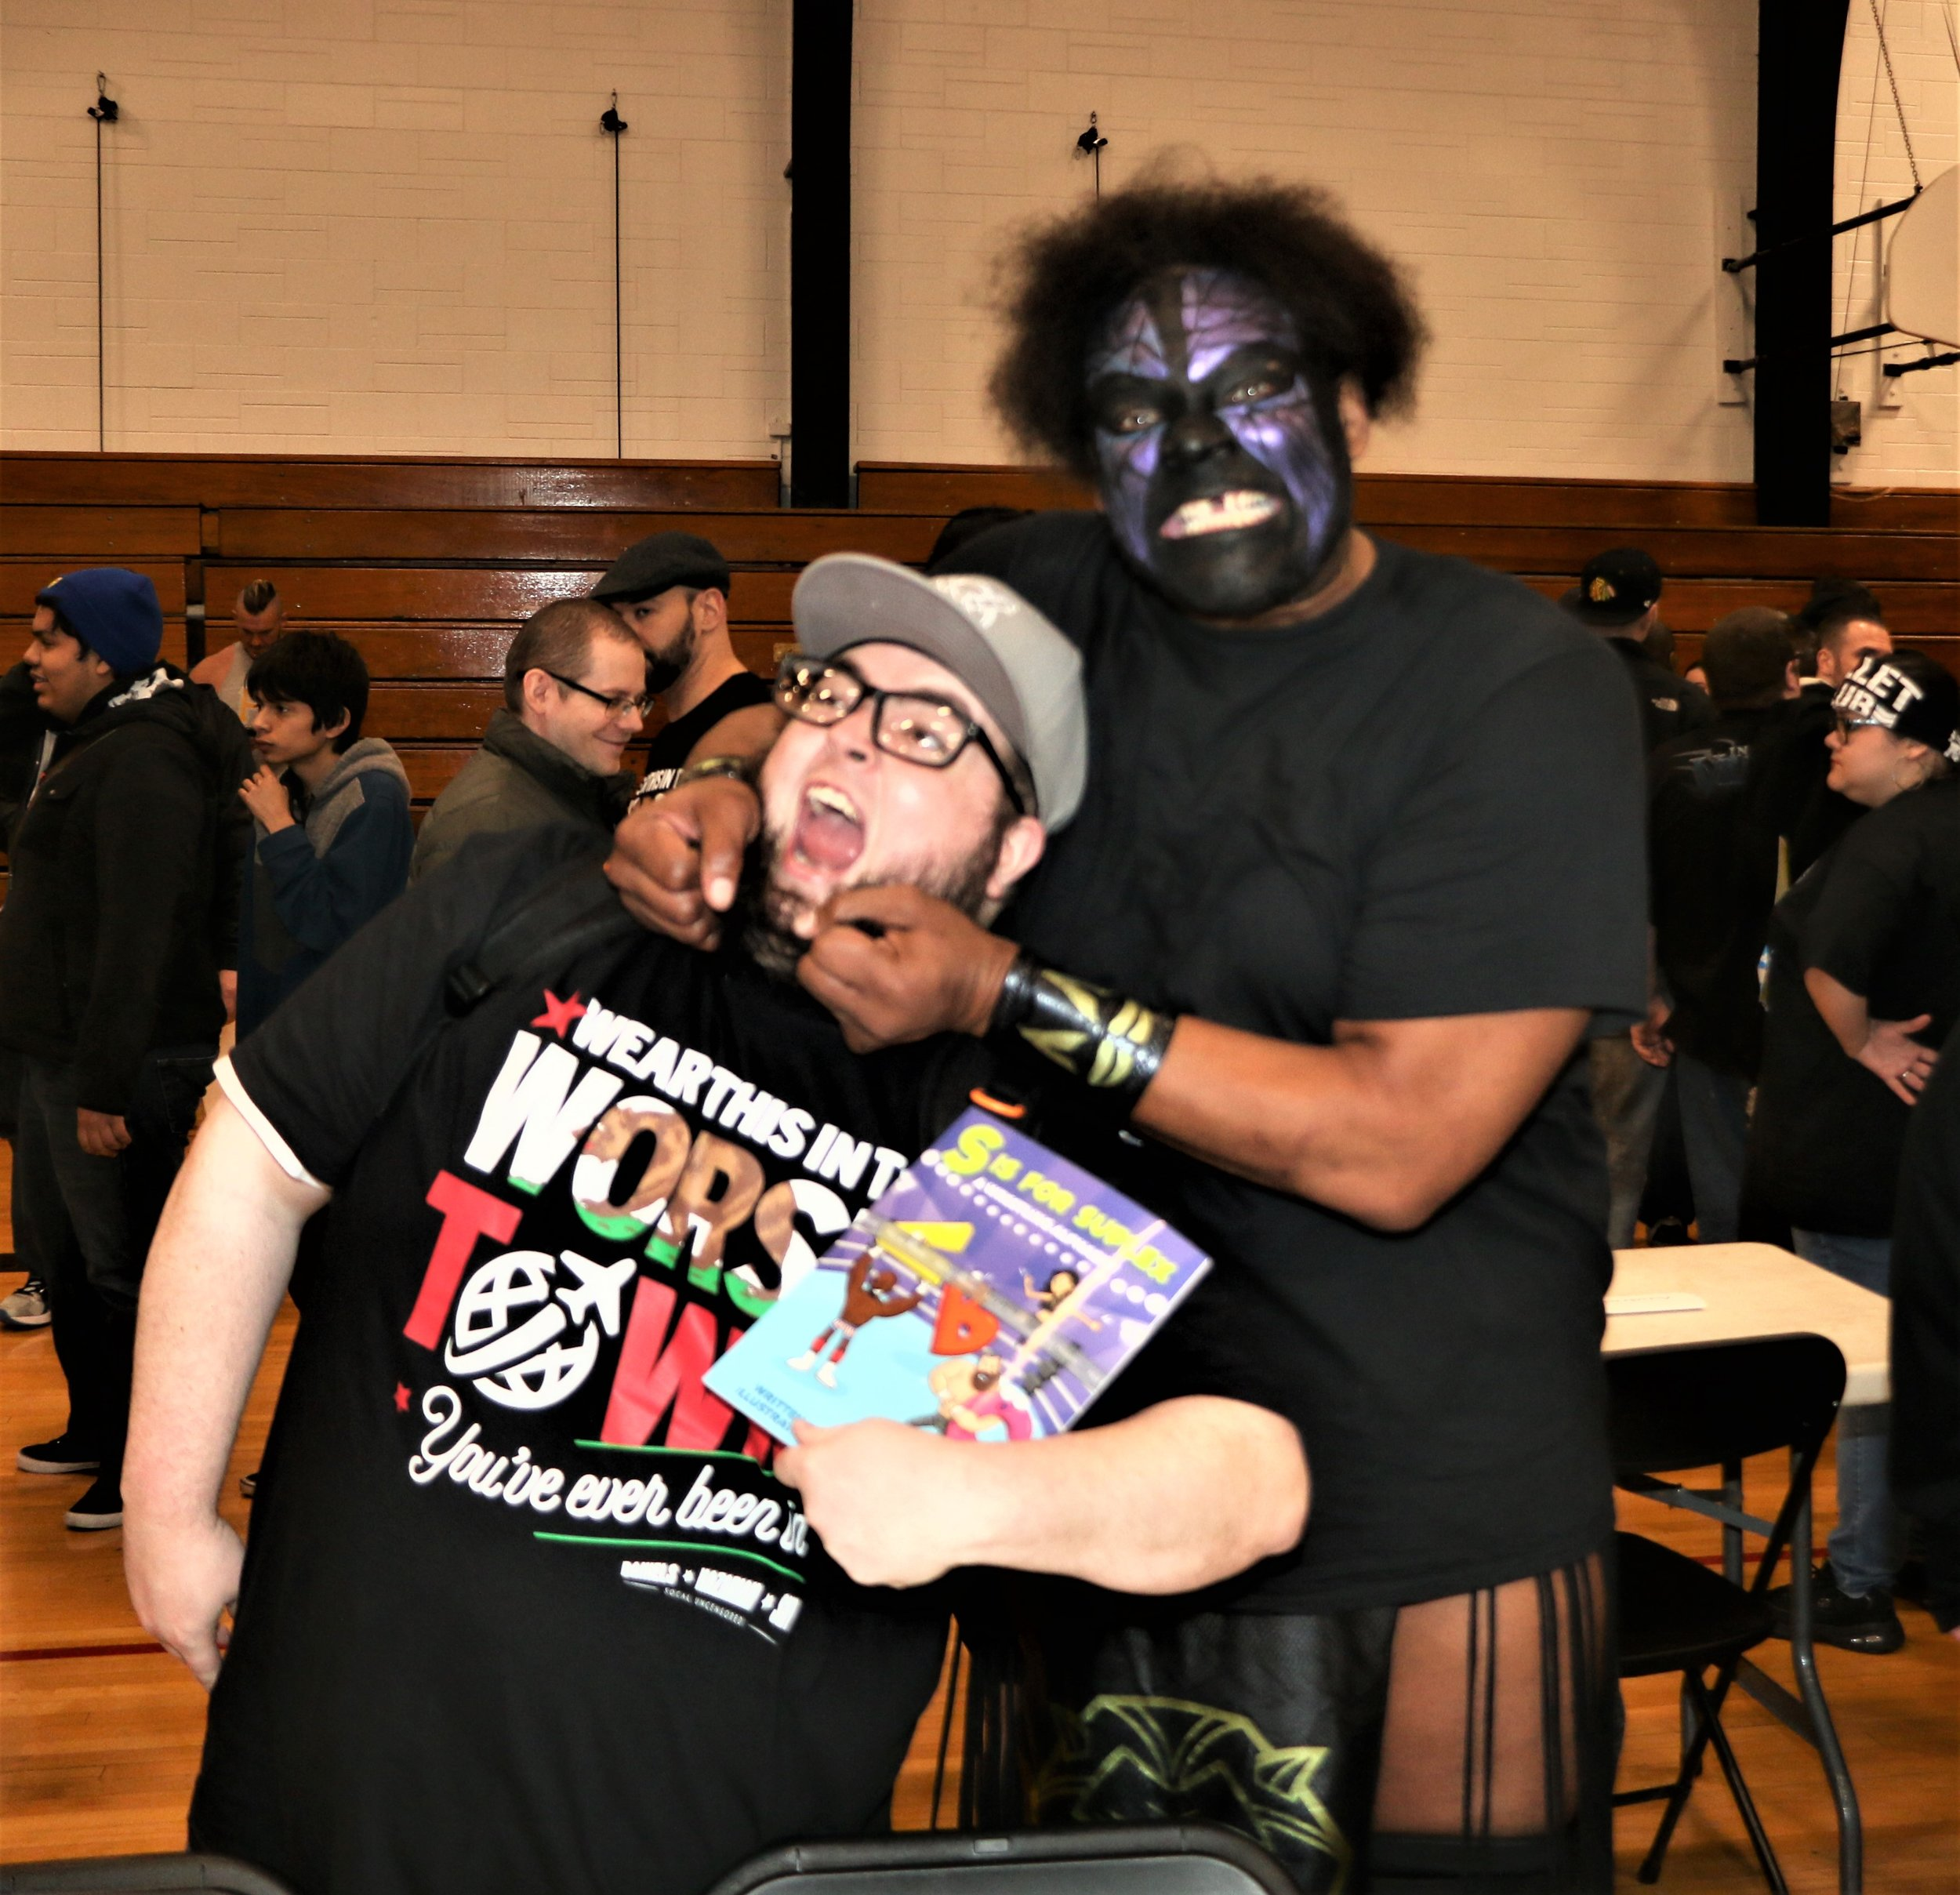 Kongo Kong poses with a fan during the VIP Fan Fest.